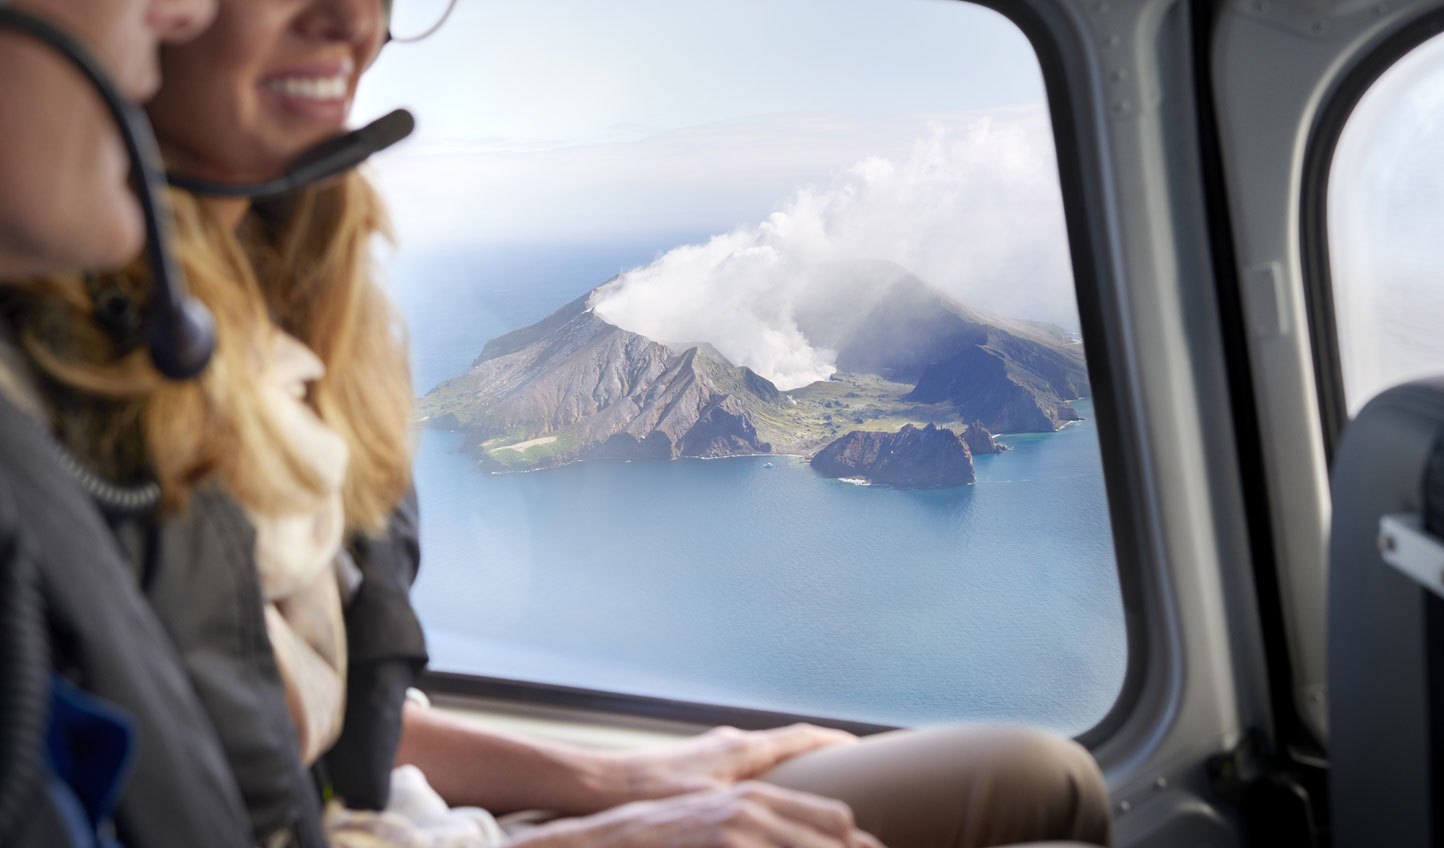 Soar above billowing volcanoes on this one-of-a-kind holiday